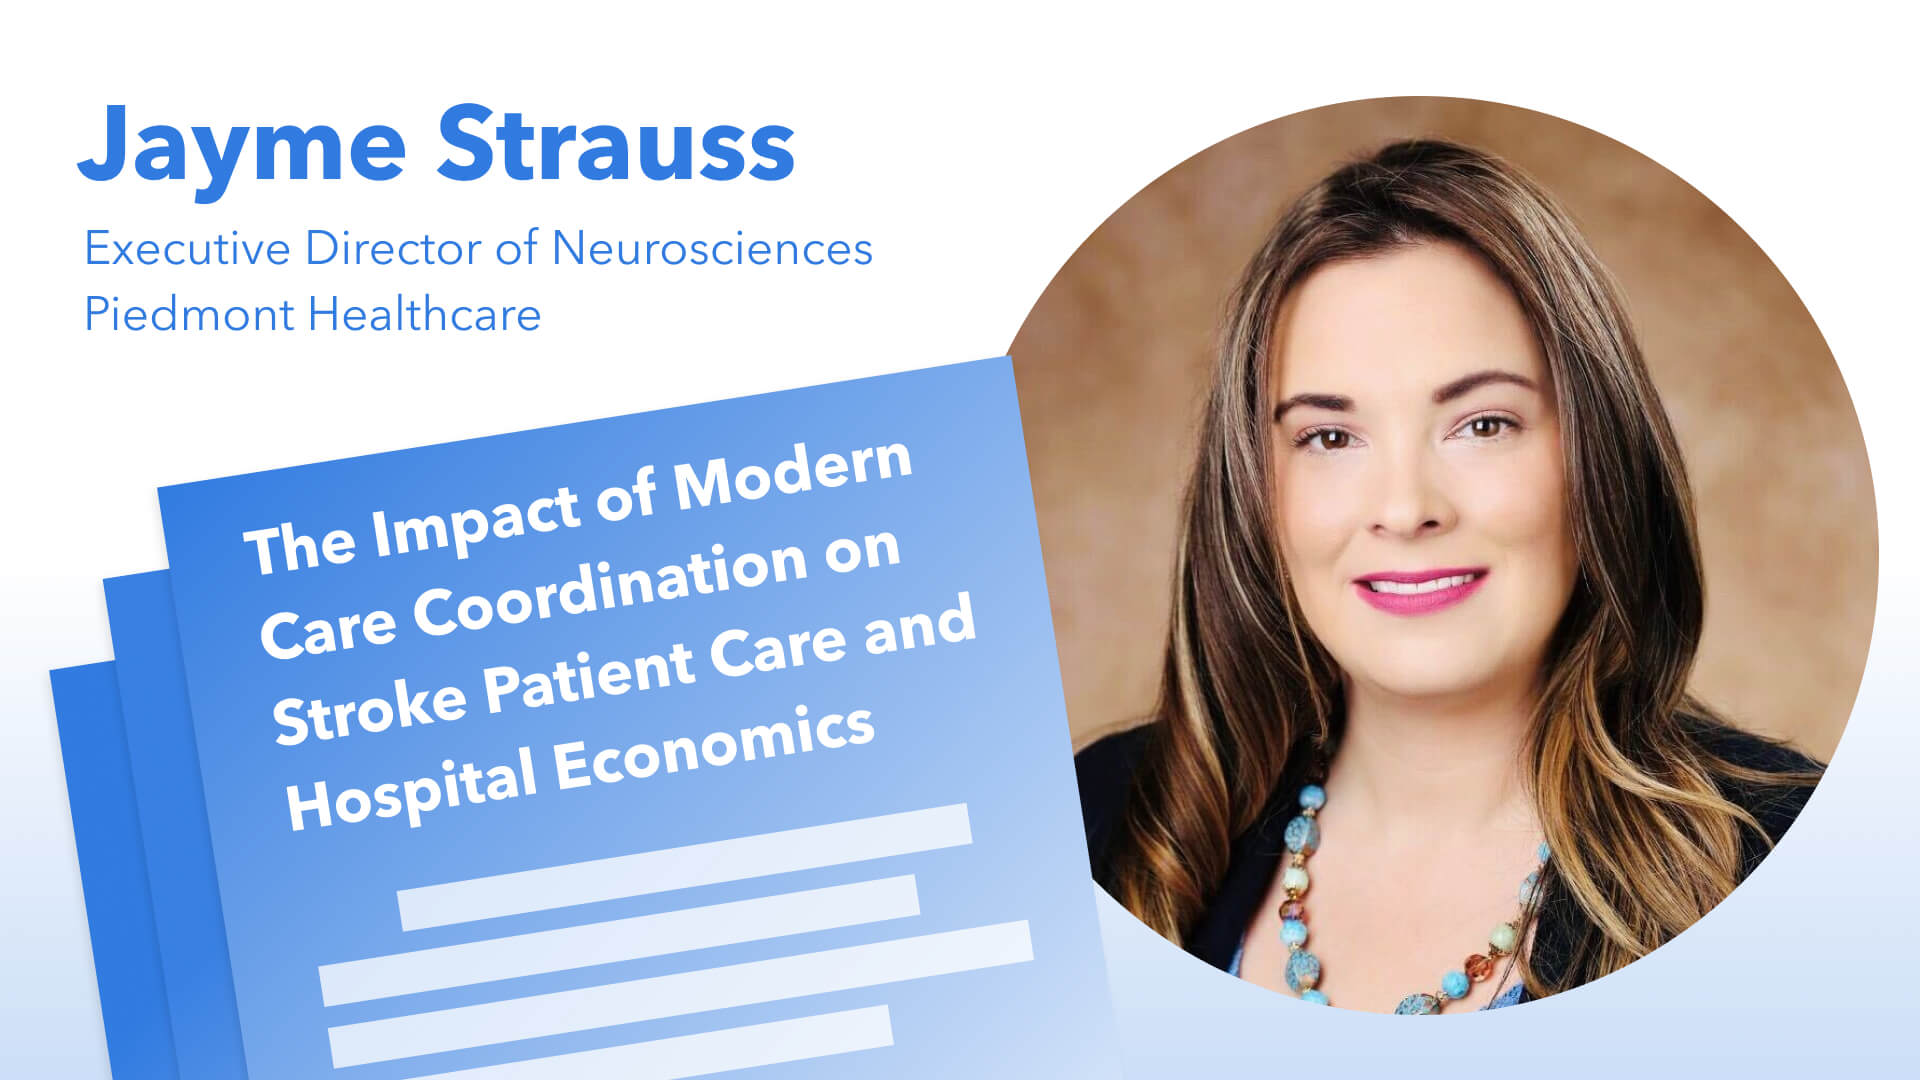 The Impact of Intelligent Care Coordination on Stroke Care and Hospital Economics